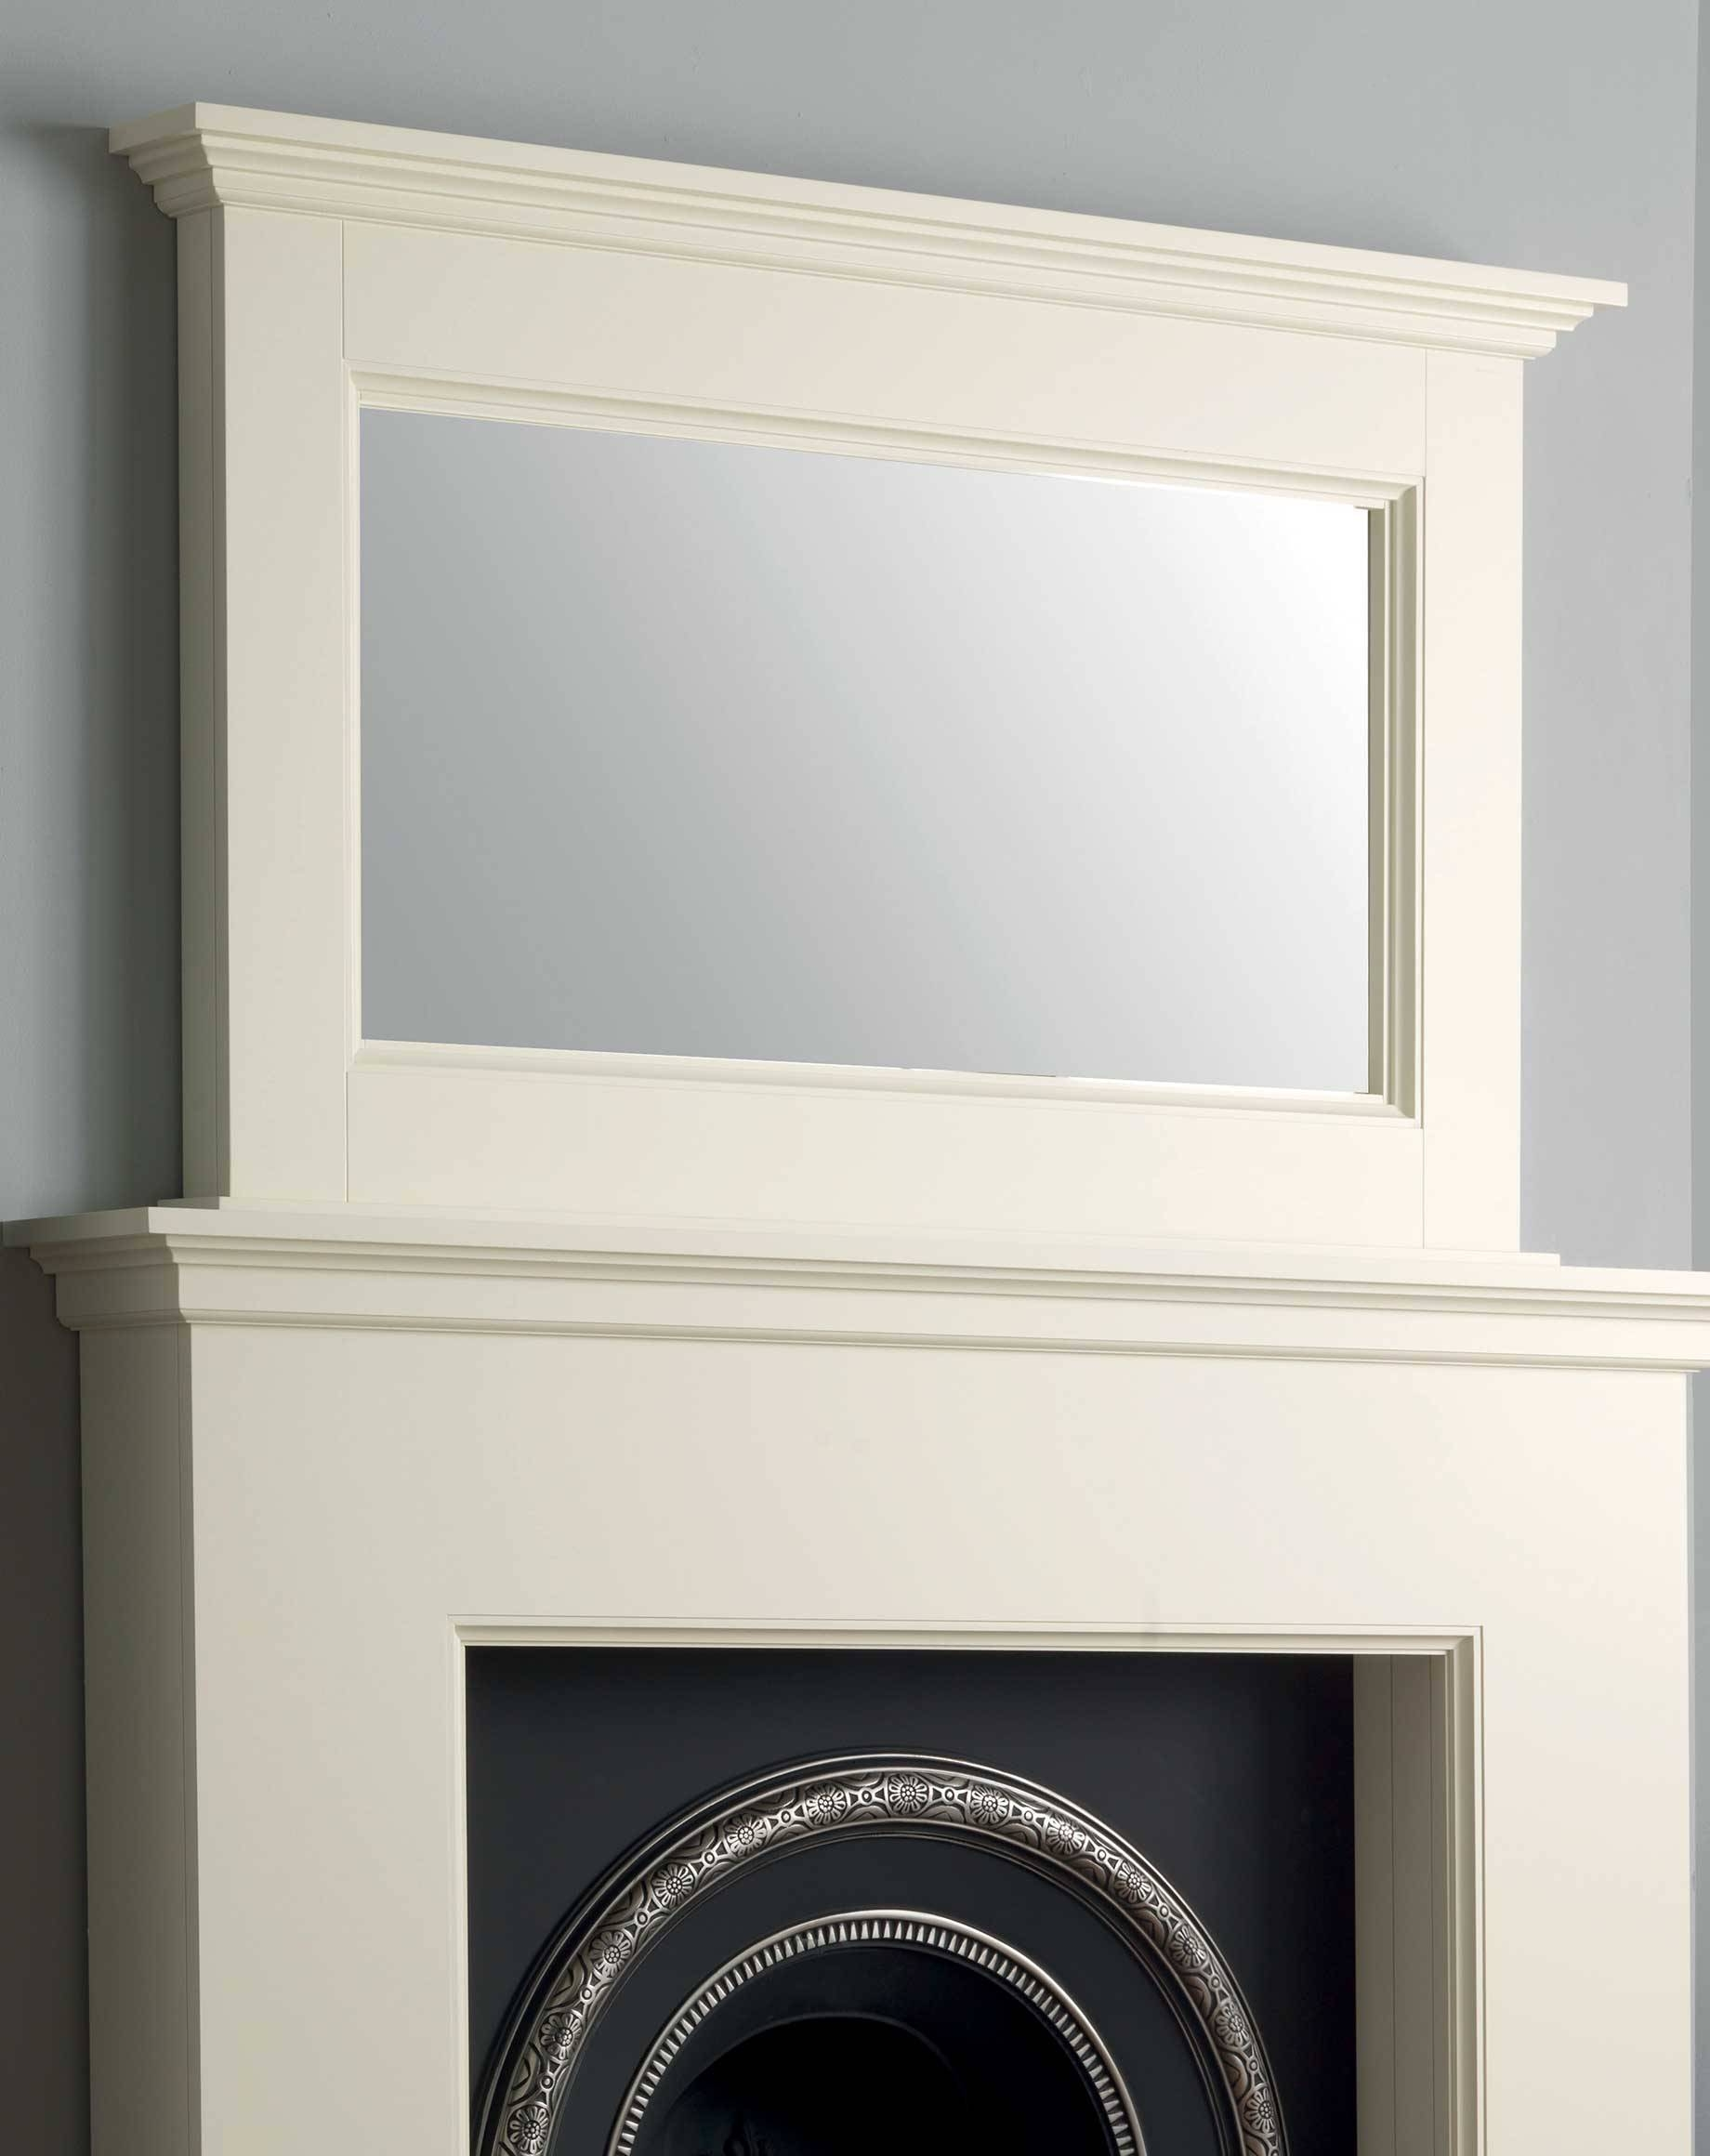 Fireplaces, Mantelpieces, Fire Surrounds | Emberz Mantels Regarding Mantelpiece Mirrors (View 6 of 15)